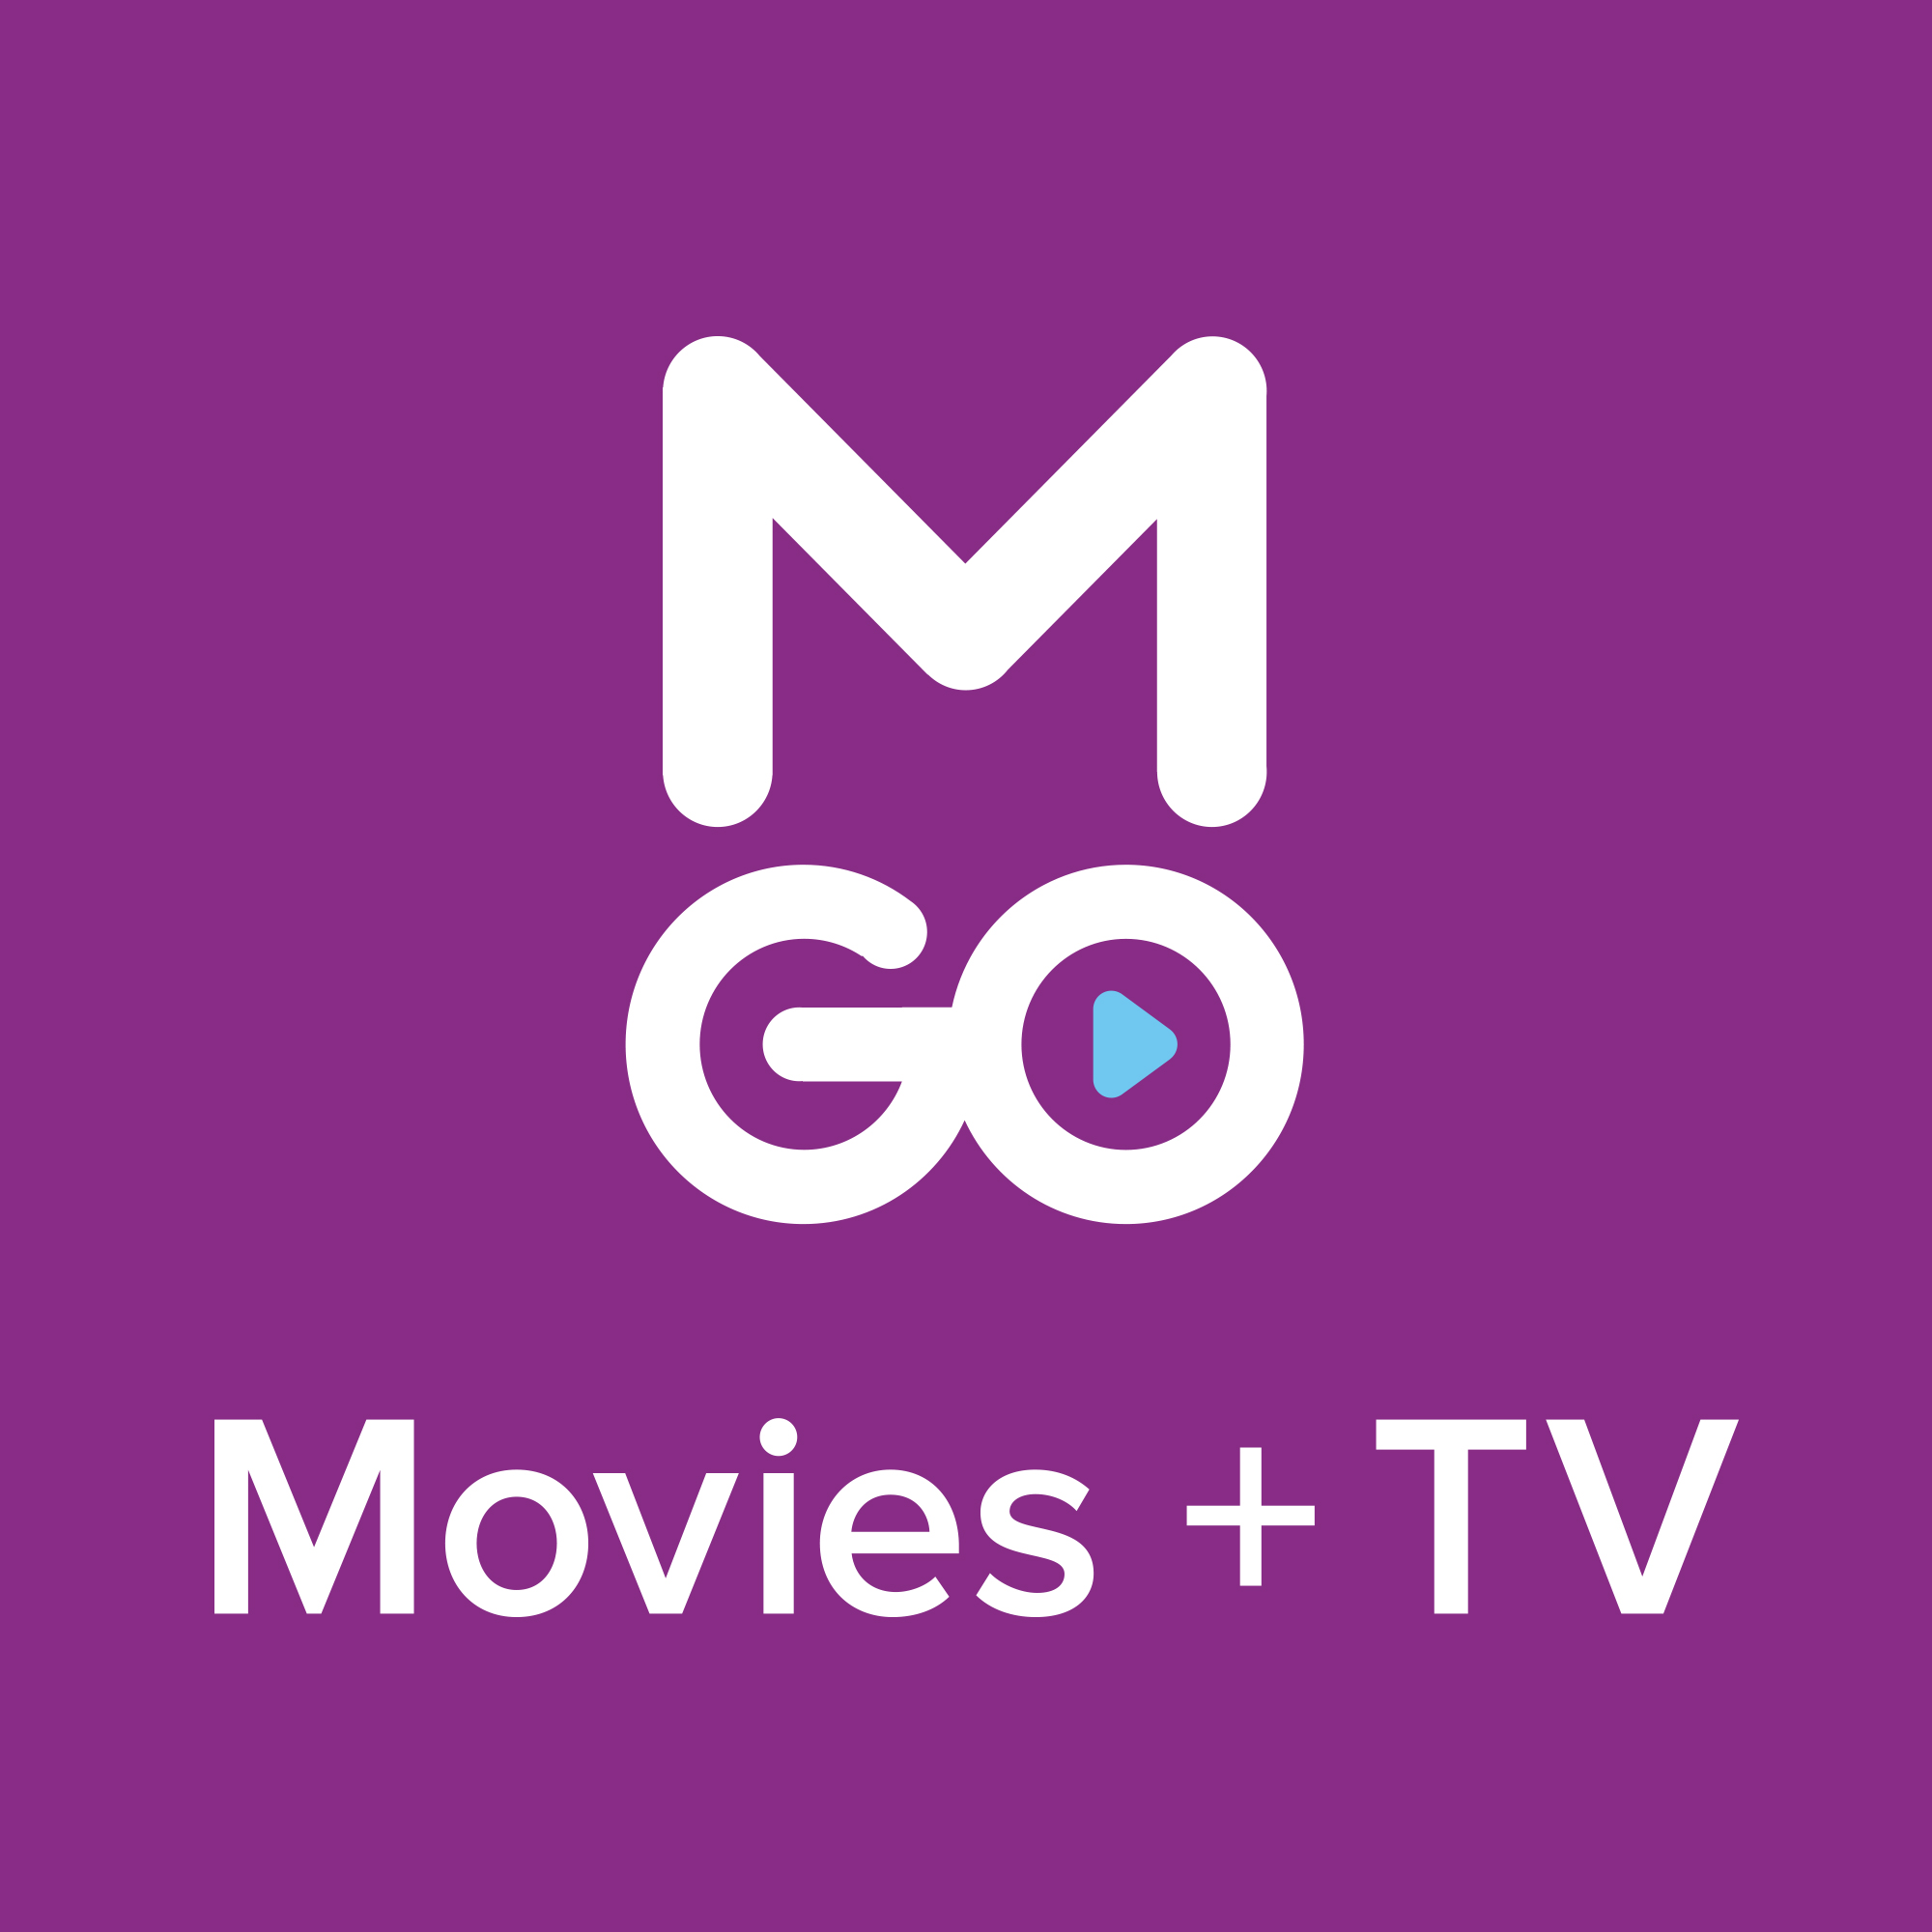 M-Go Review and 2 Free Rentals - DelightfulChaos.com